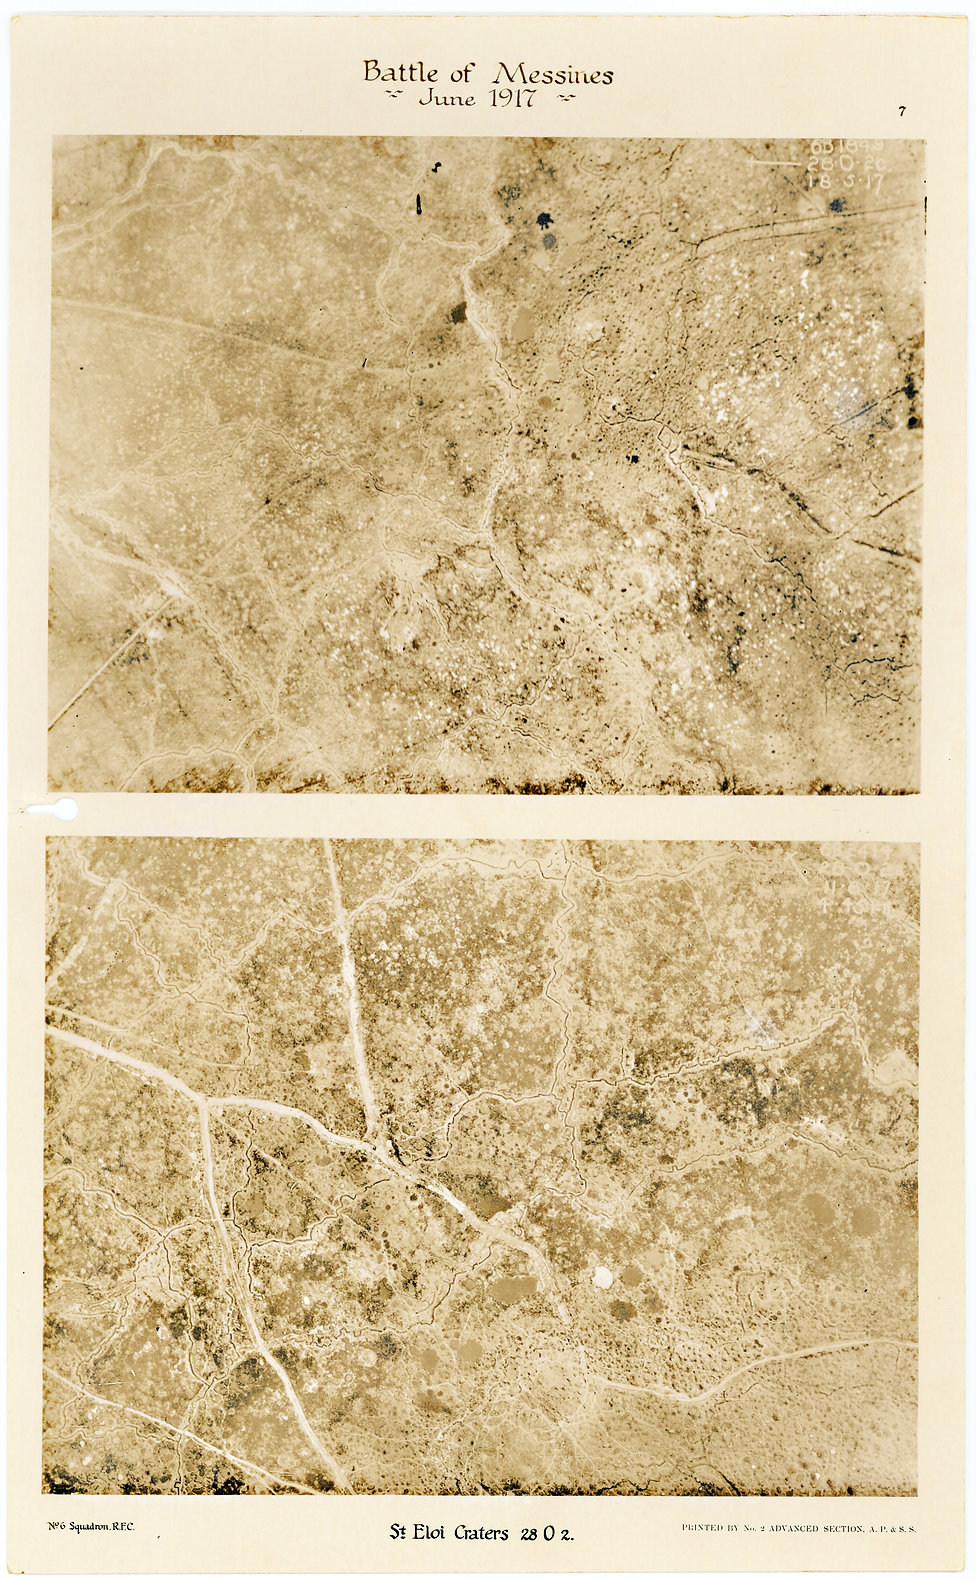 6 Squadron aerial photographs of St Eloi craters, before and after the Battle of Messines in June 1917